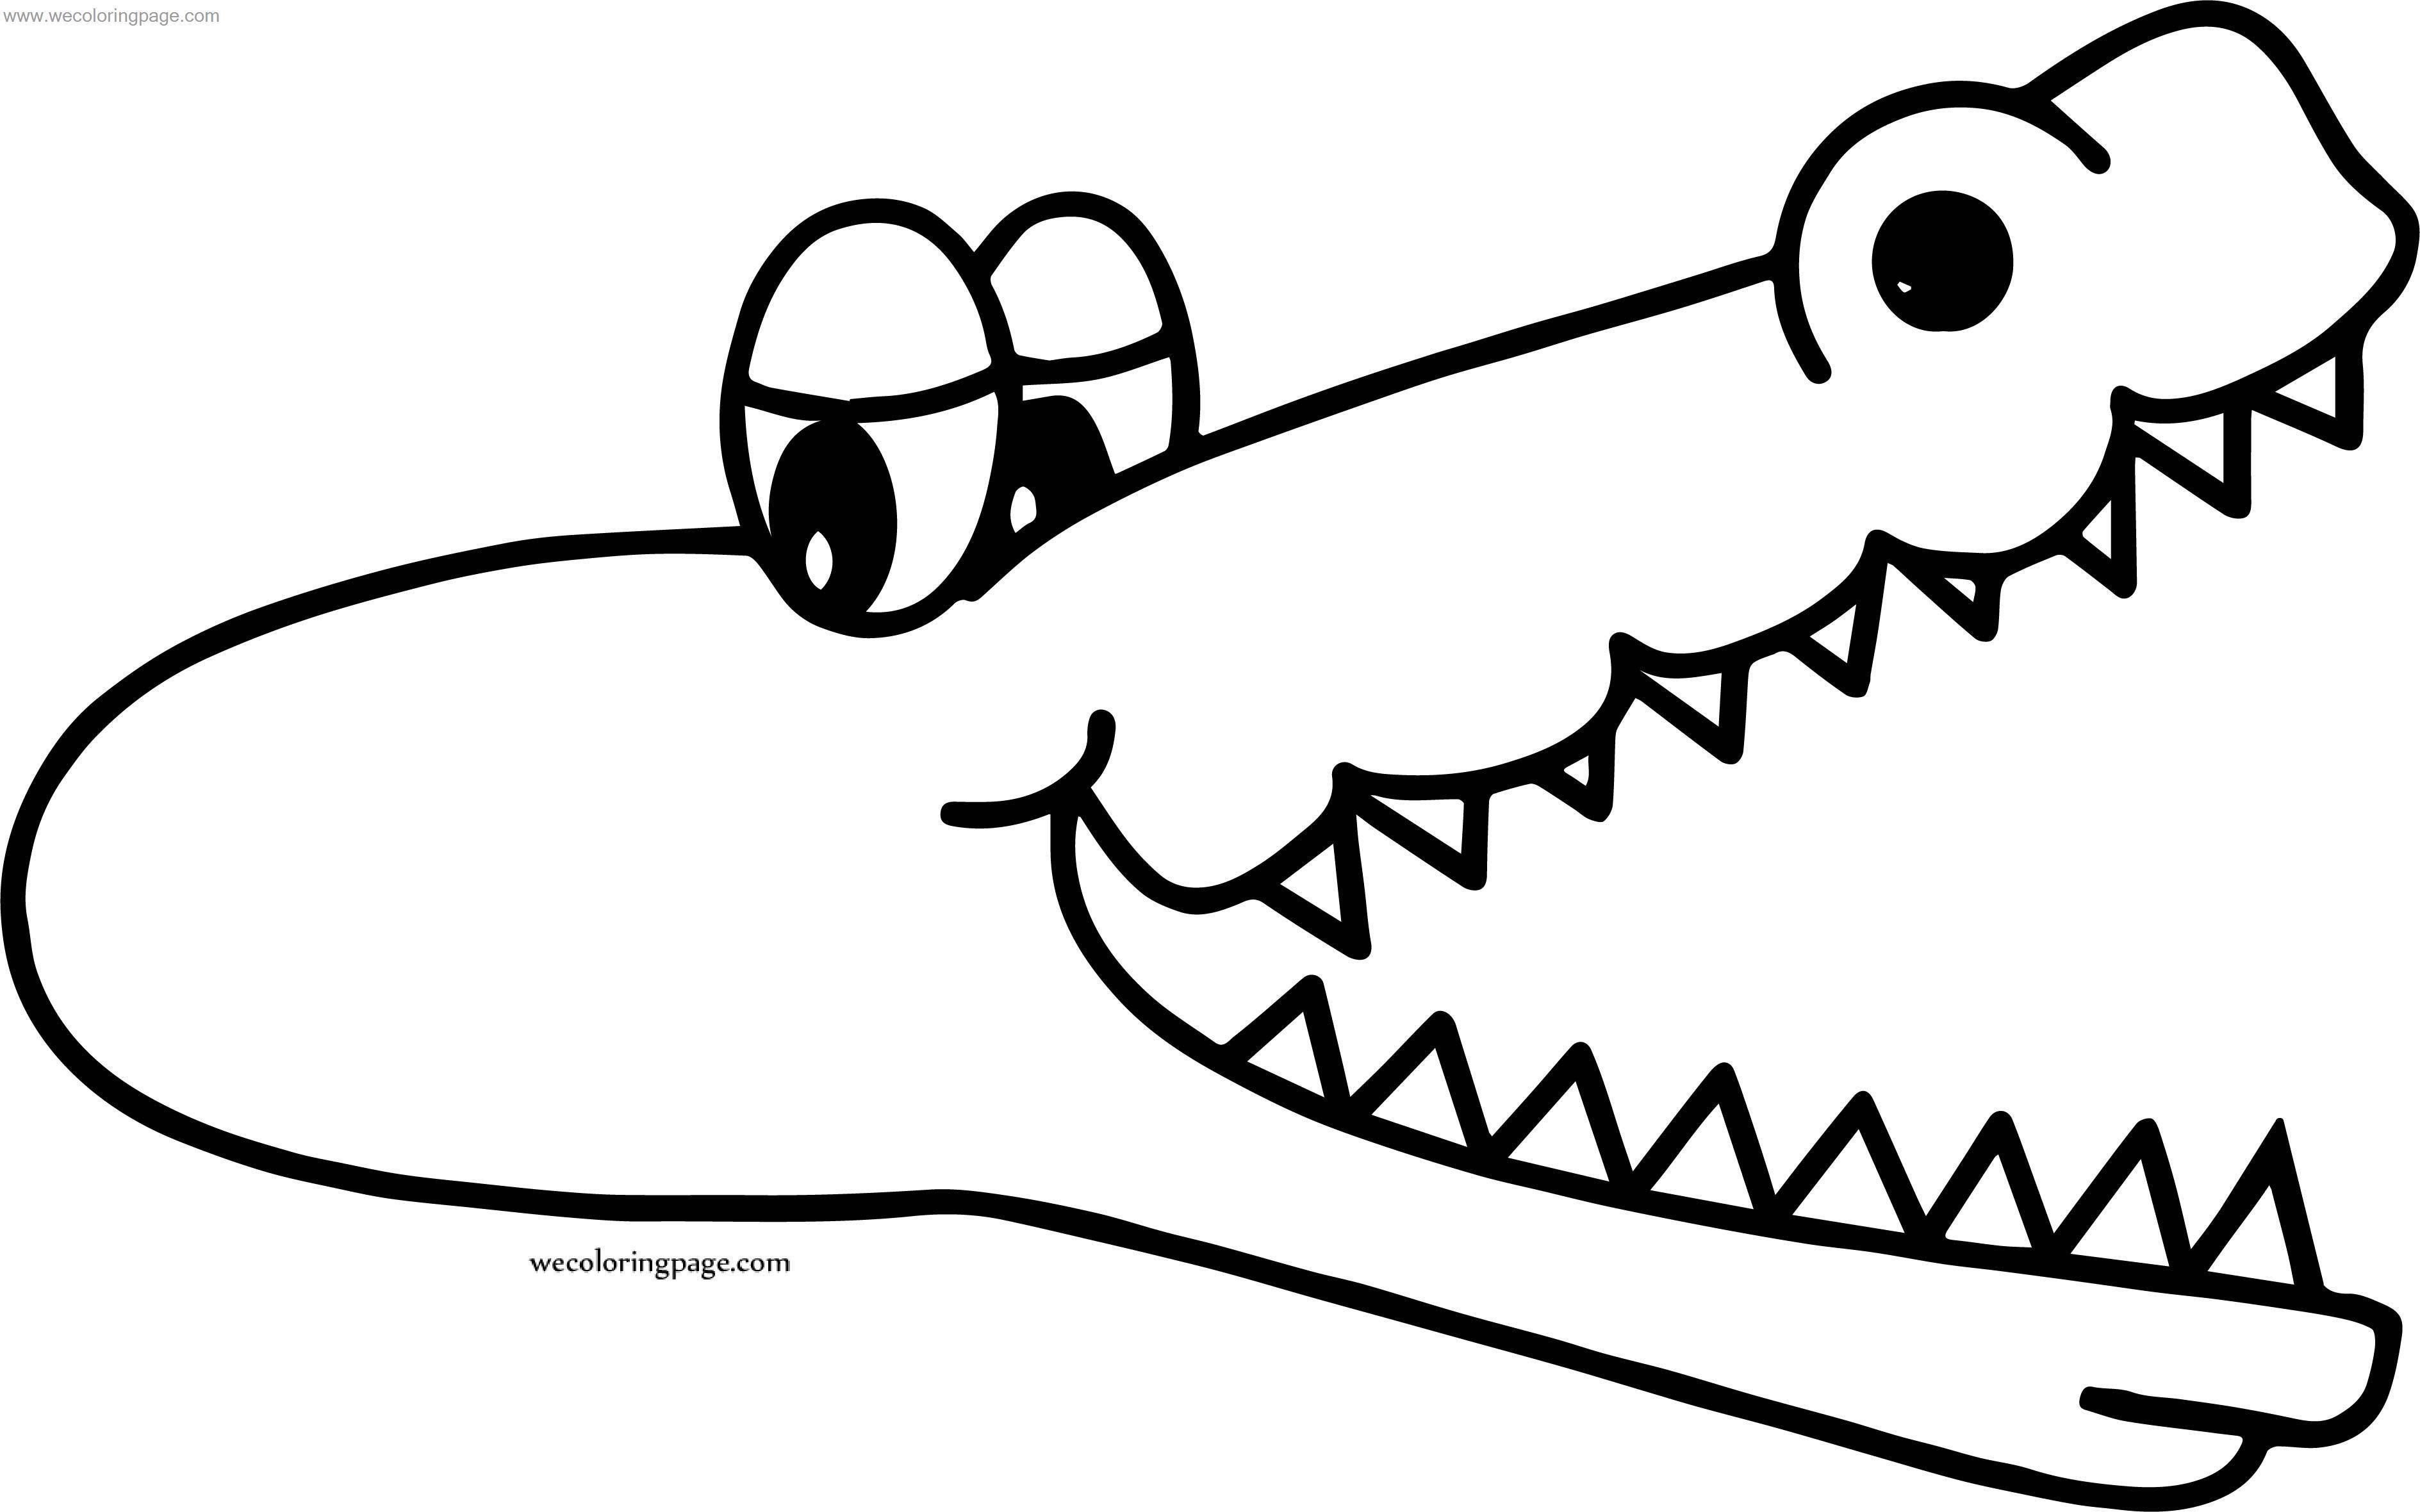 Too Crocodile Alligator Coloring Page